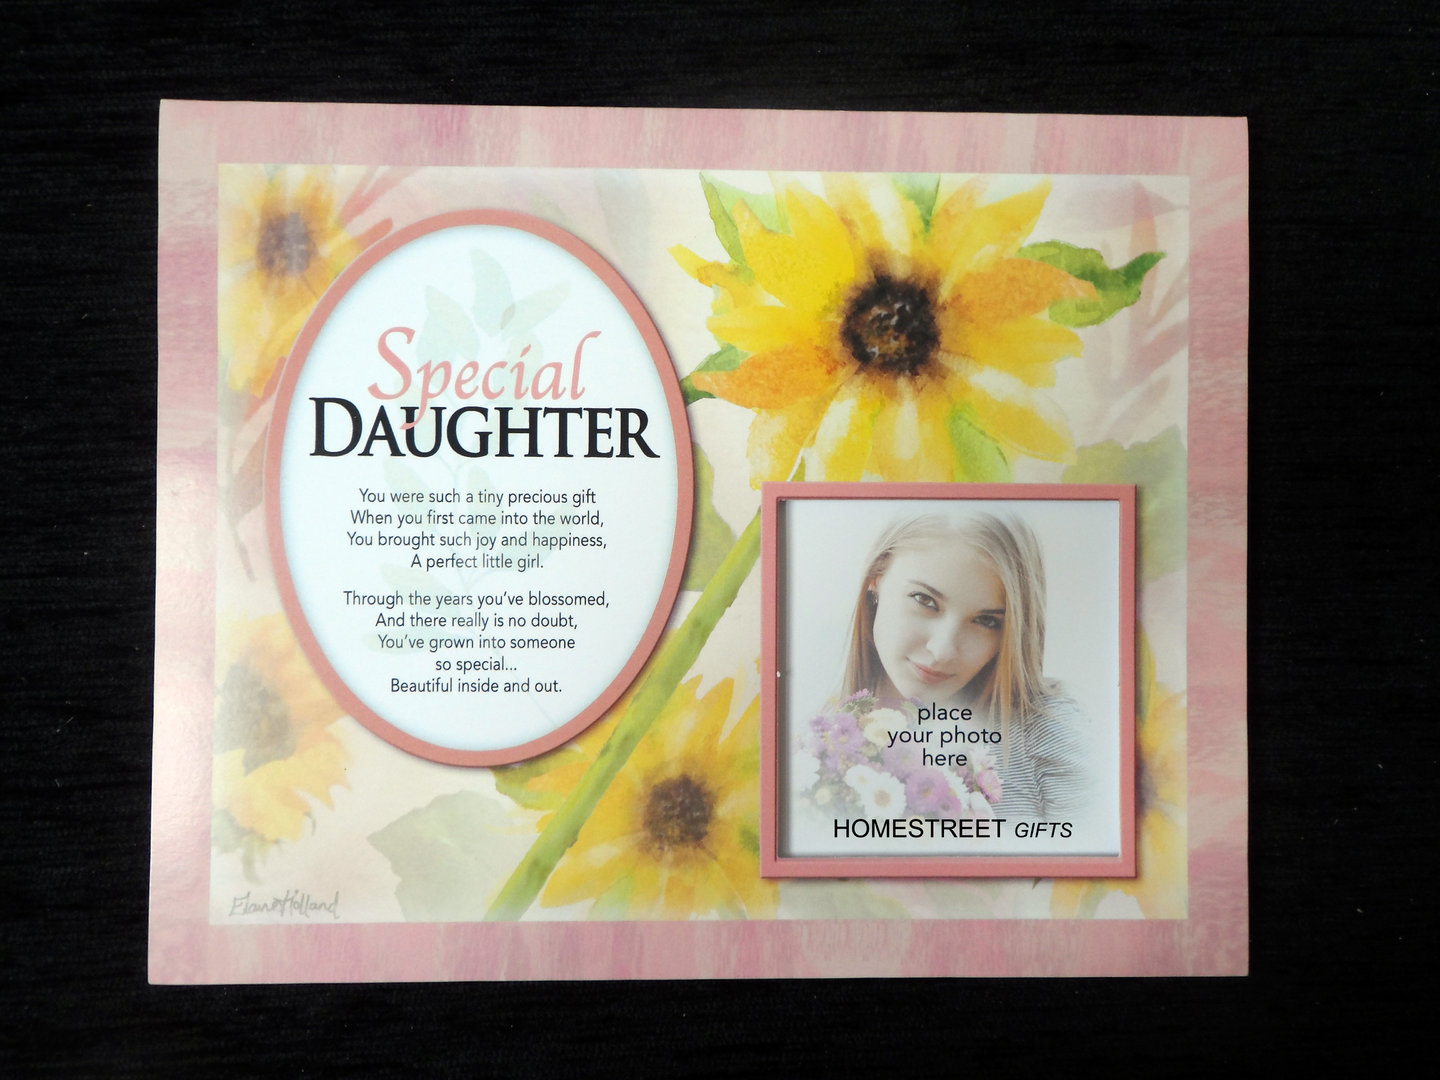 Details about Special Daughter Flower Family & Friends Photo Mount Gift  With Poem Verse New